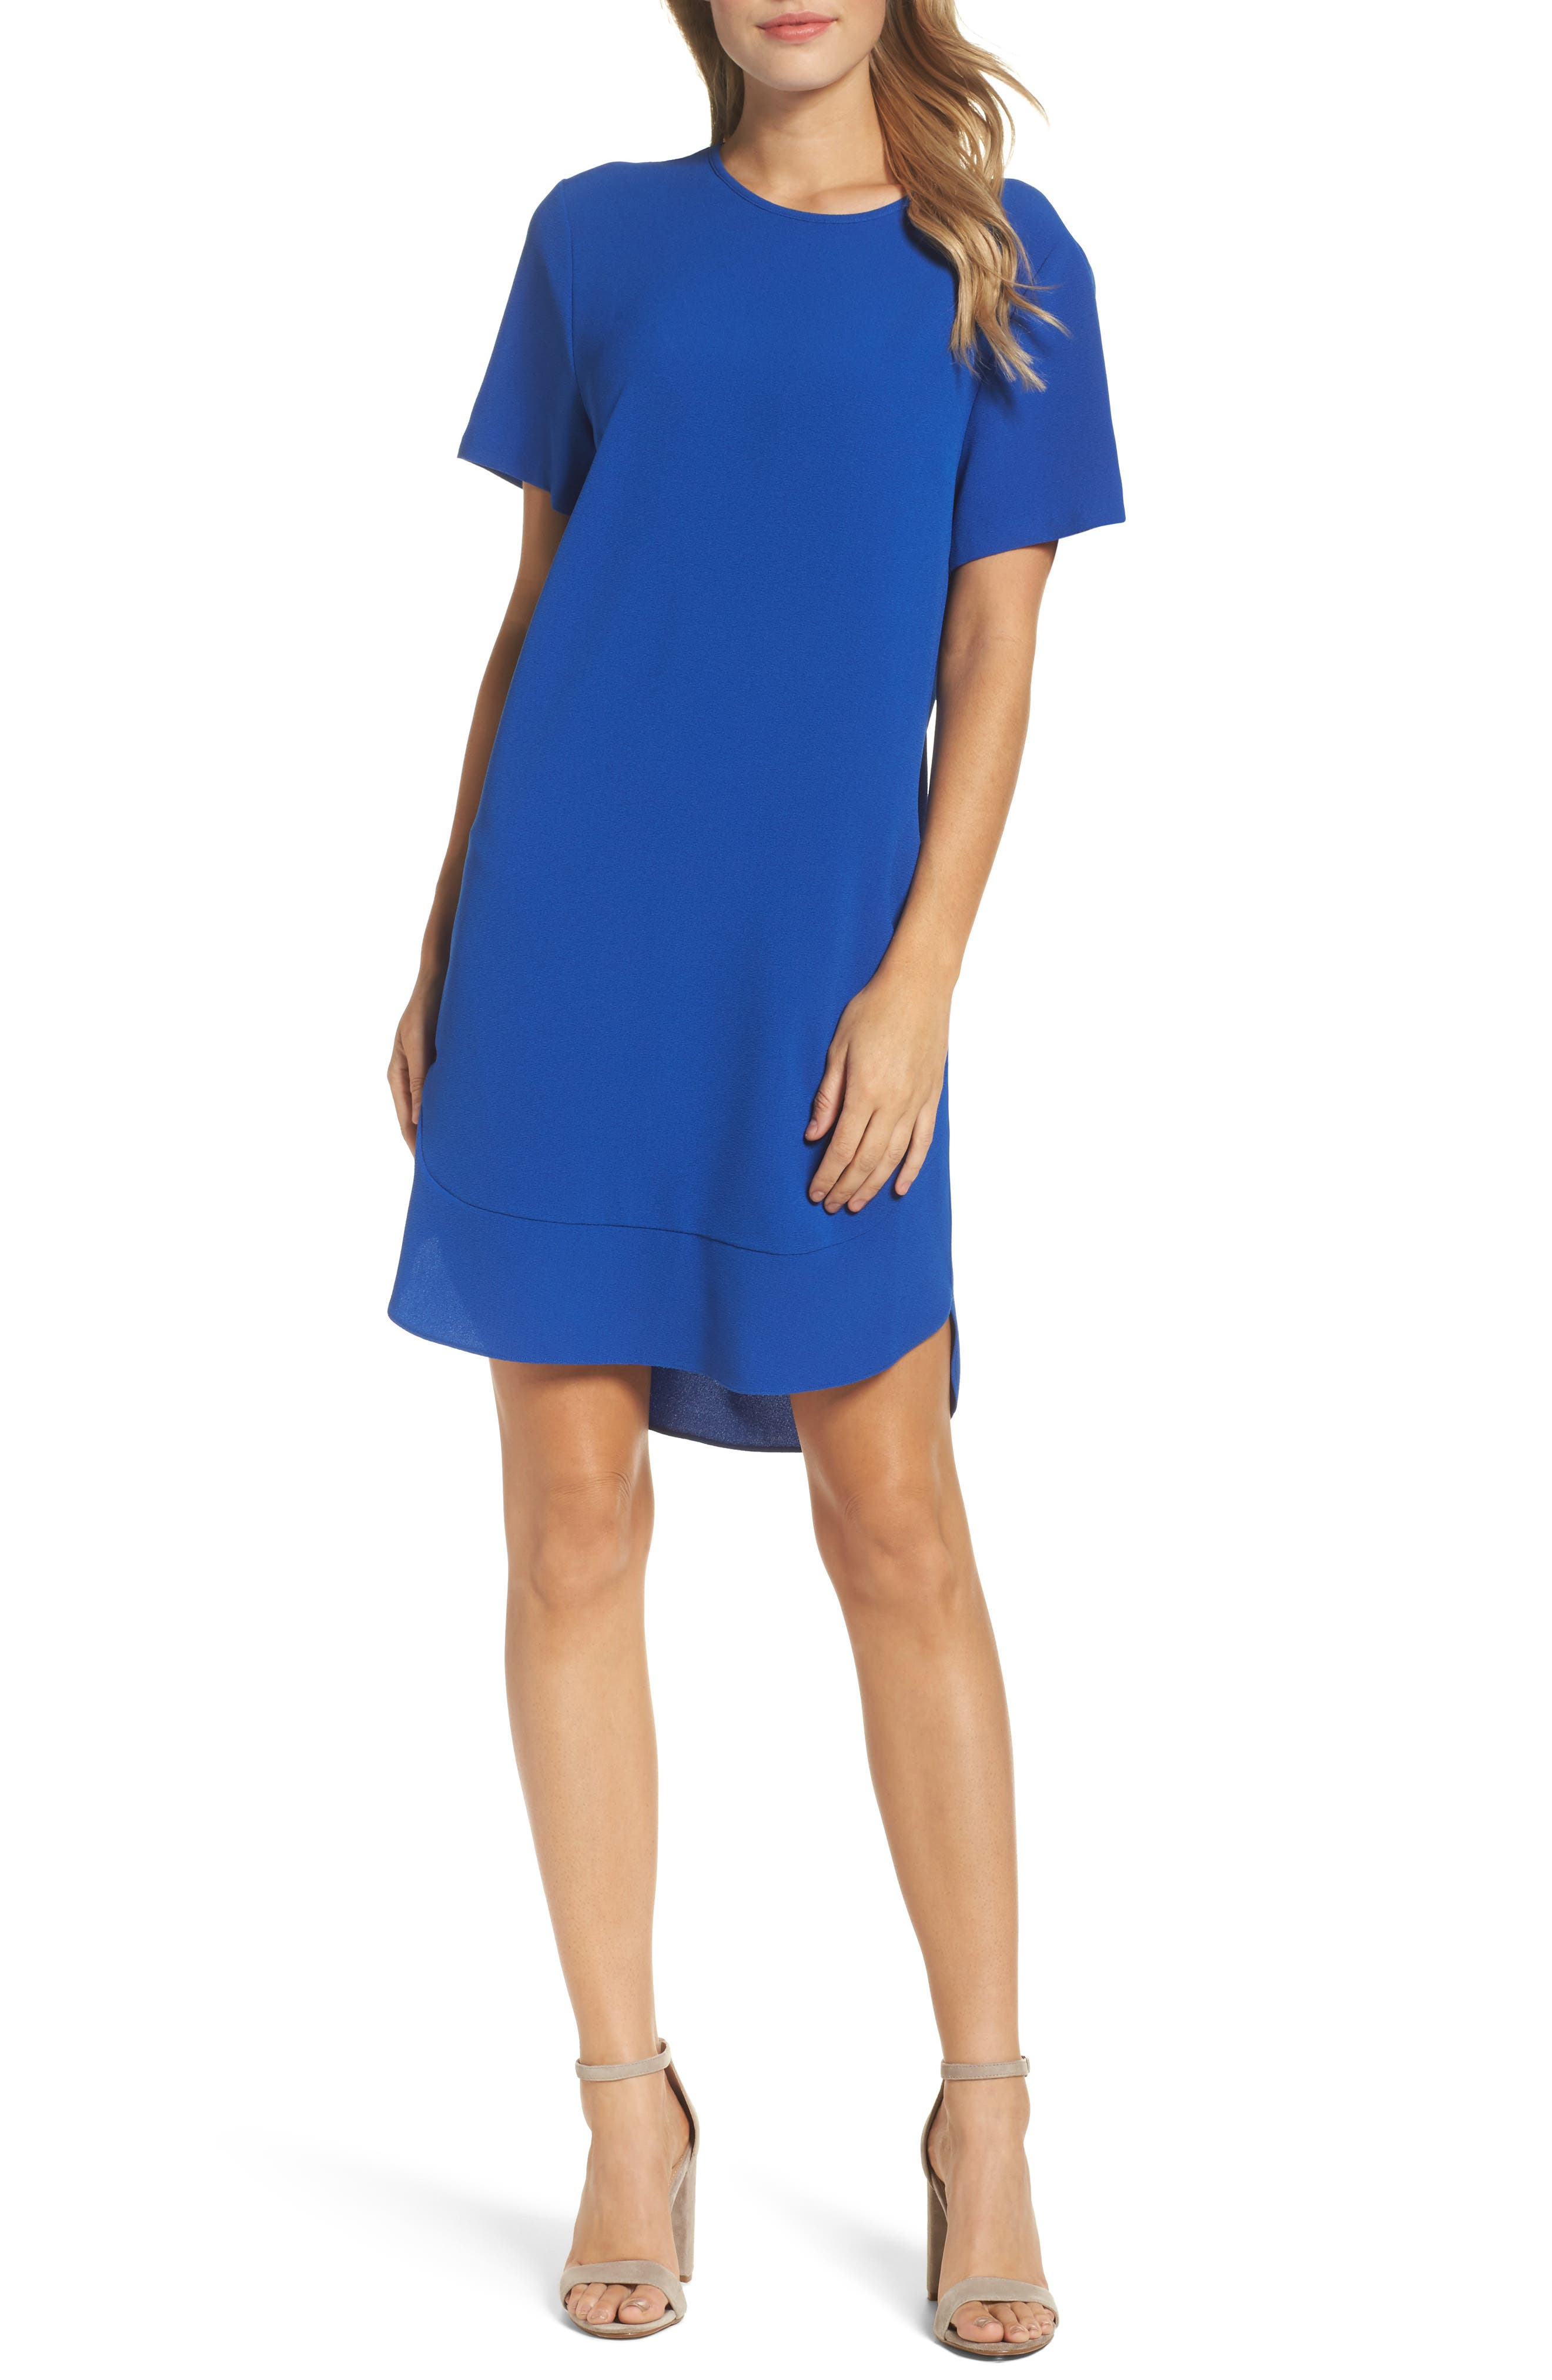 Alternate Image 1 Selected - Felicity & Coco Emerson Shift Dress (Nordstrom Exclusive)